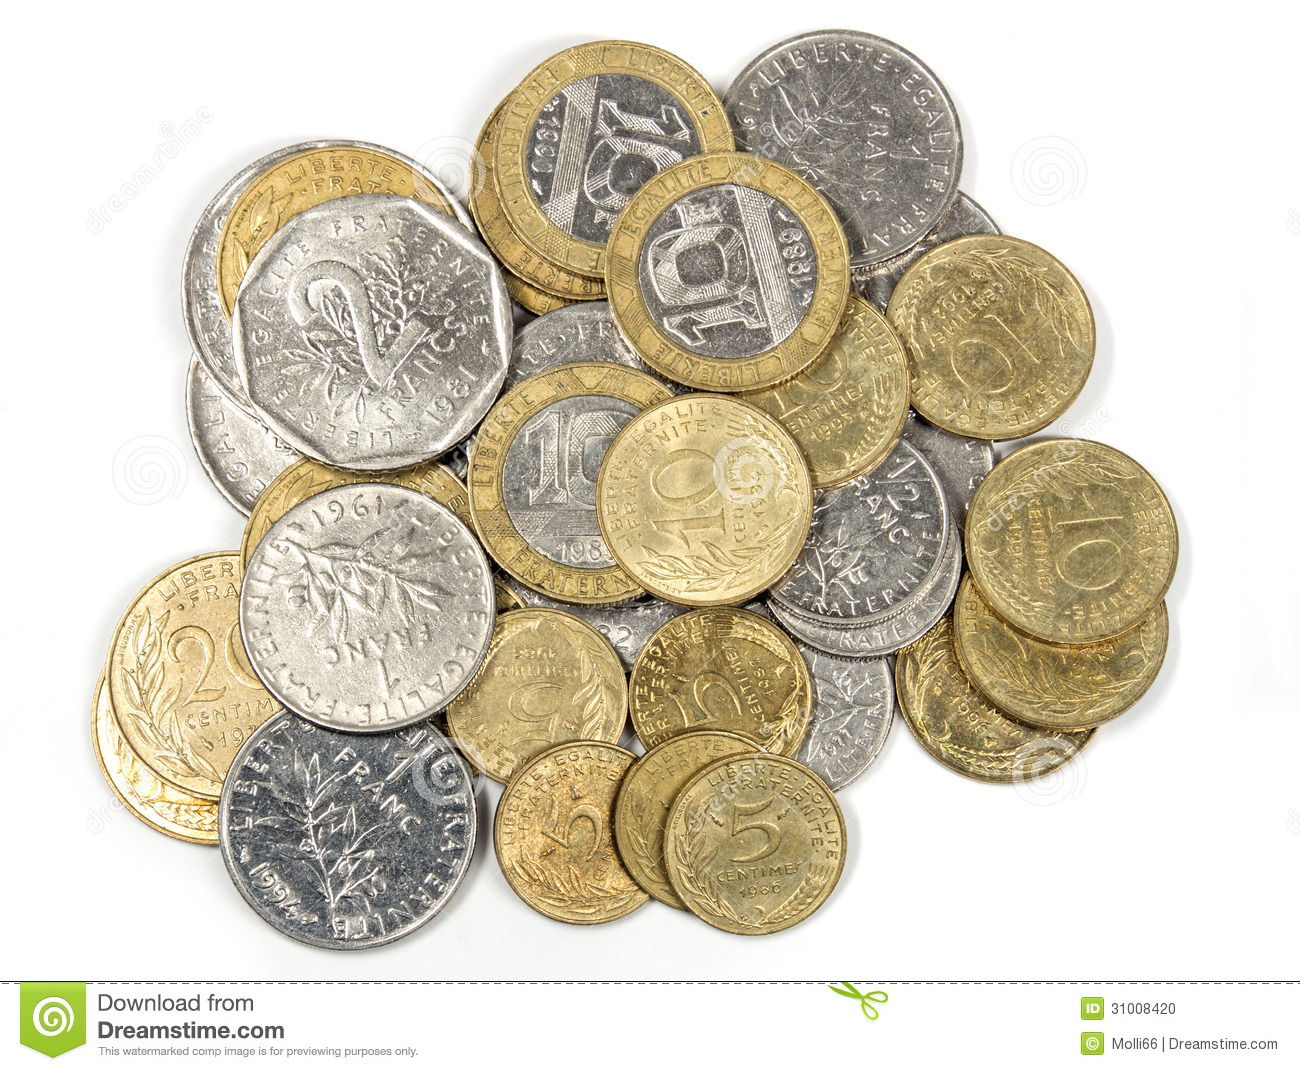 Heap Of French Francs Money Coins Stock Photo - Image: 31008420